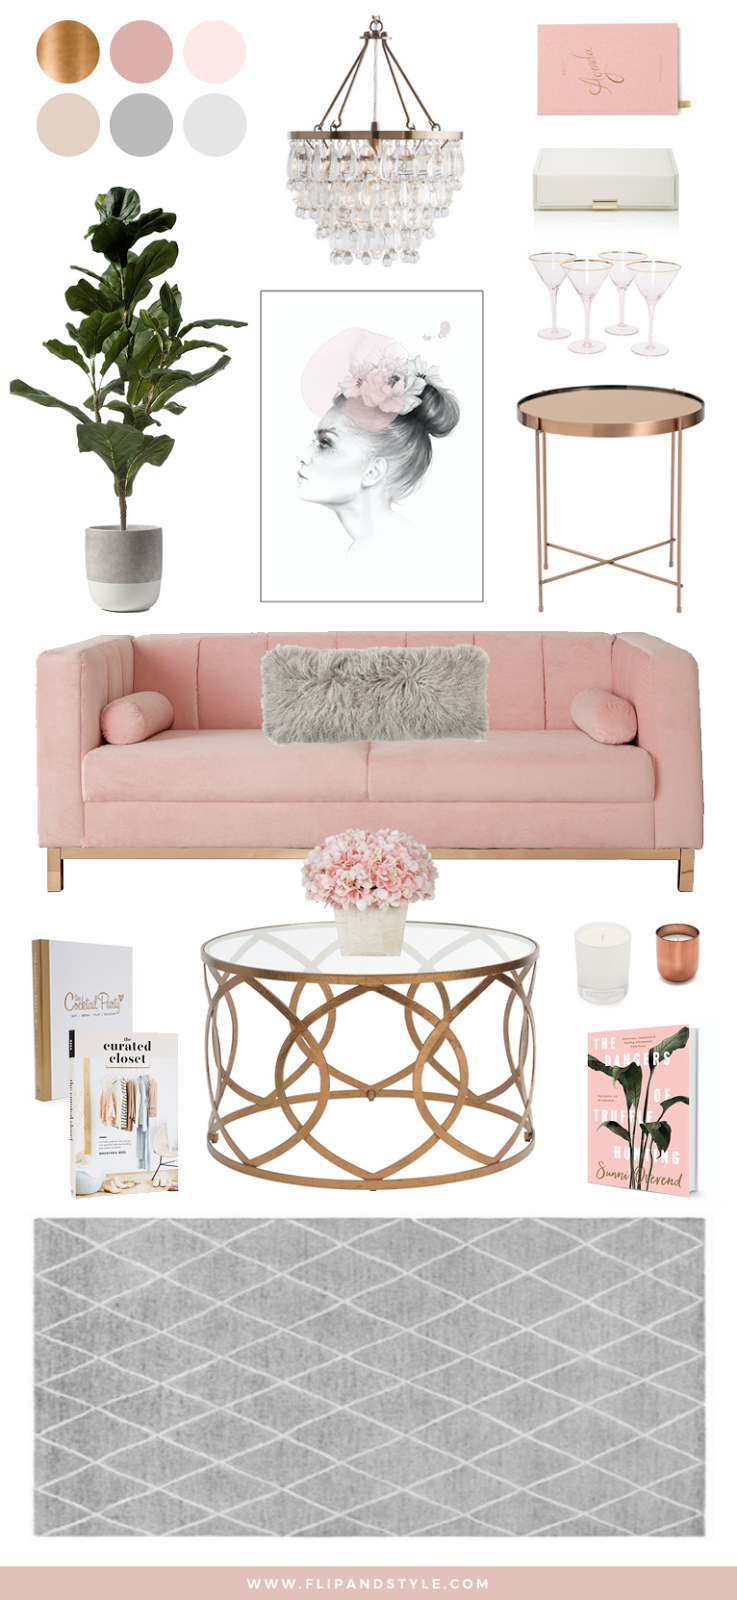 Blush copper grey home decor interior inspiration for Living room ideas rose gold